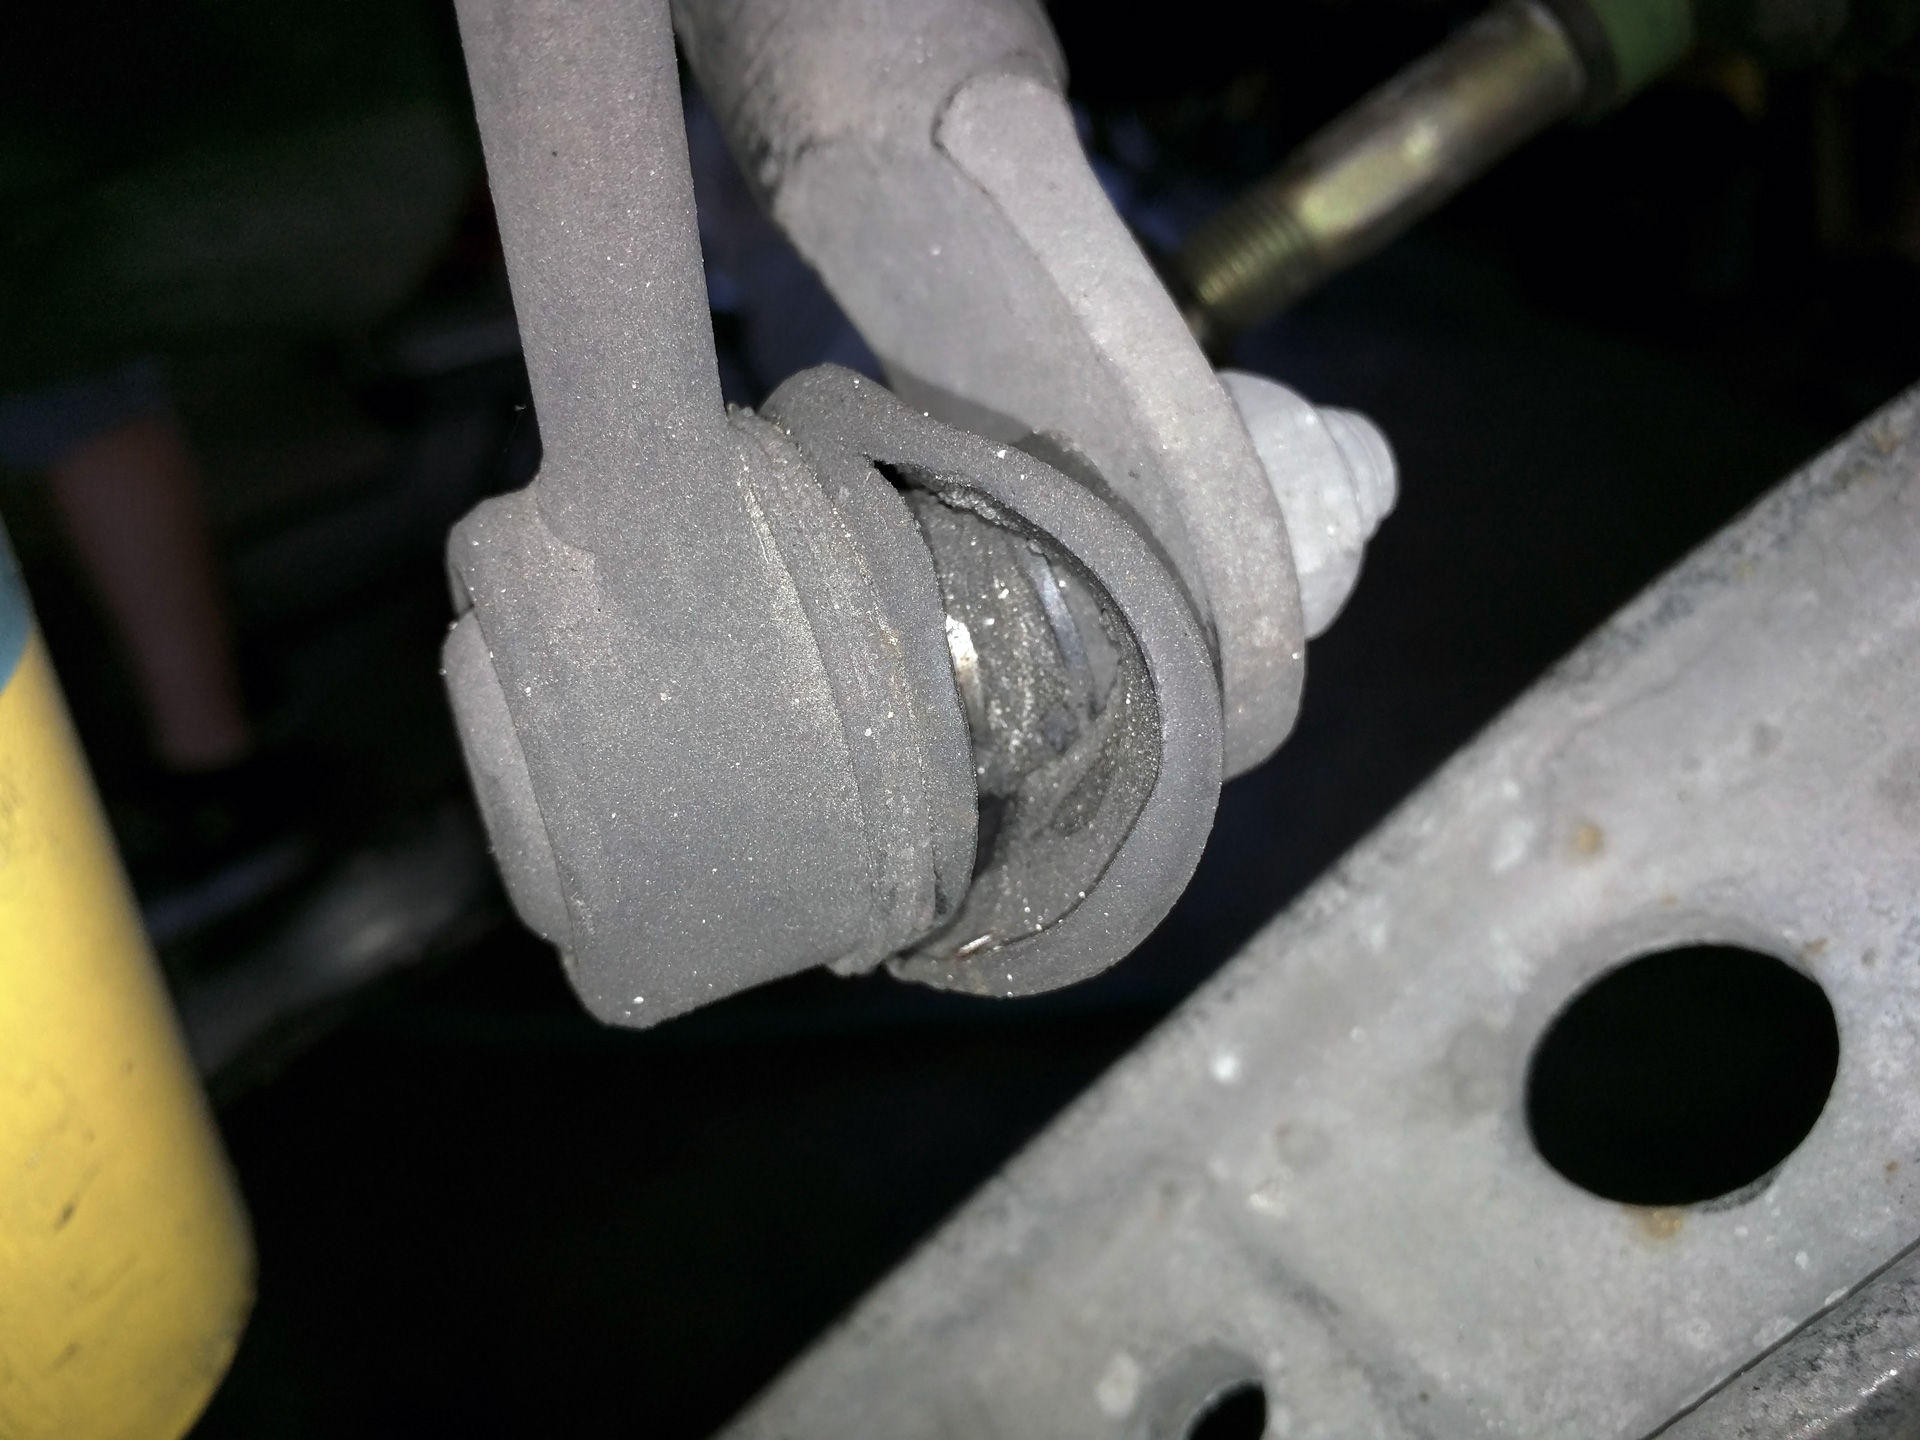 Here is a sway bar endlink.   These boots are supposed to keep grease in and keep contaminants out.